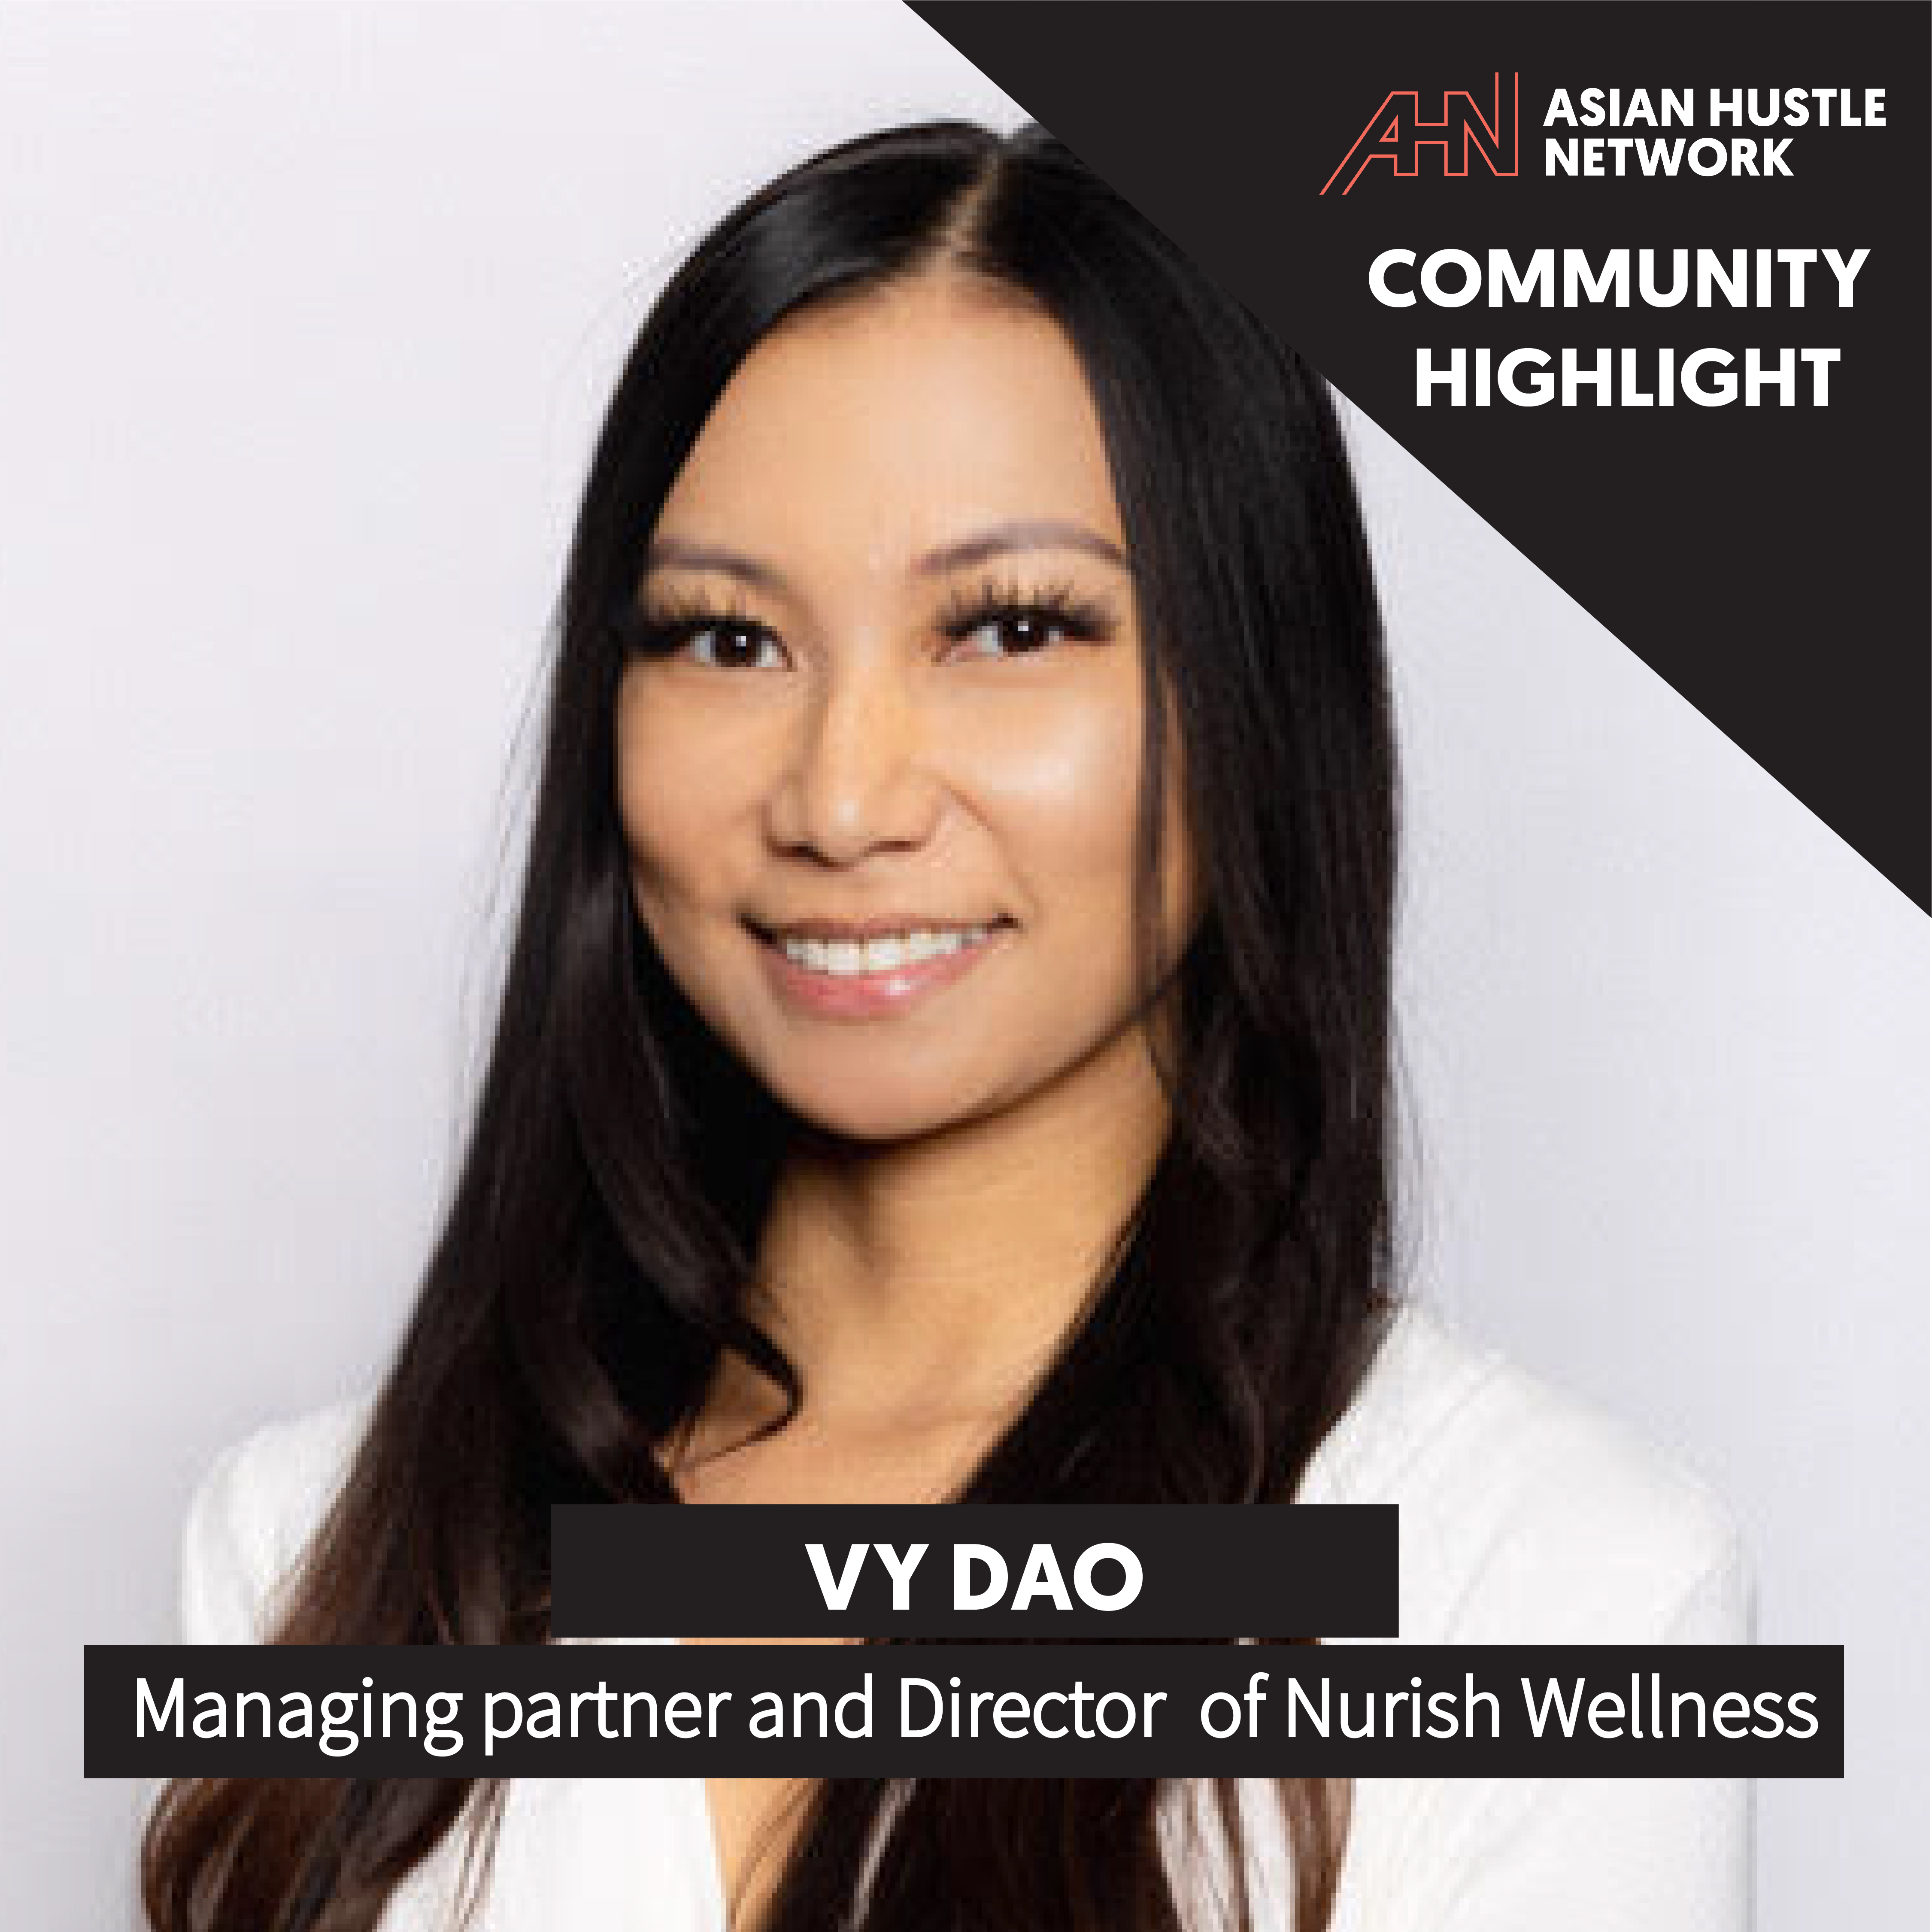 www.asianhustlenetwork.com: Vy Dao of Nurish Wellness: Innovating a Healthier Lifestyle